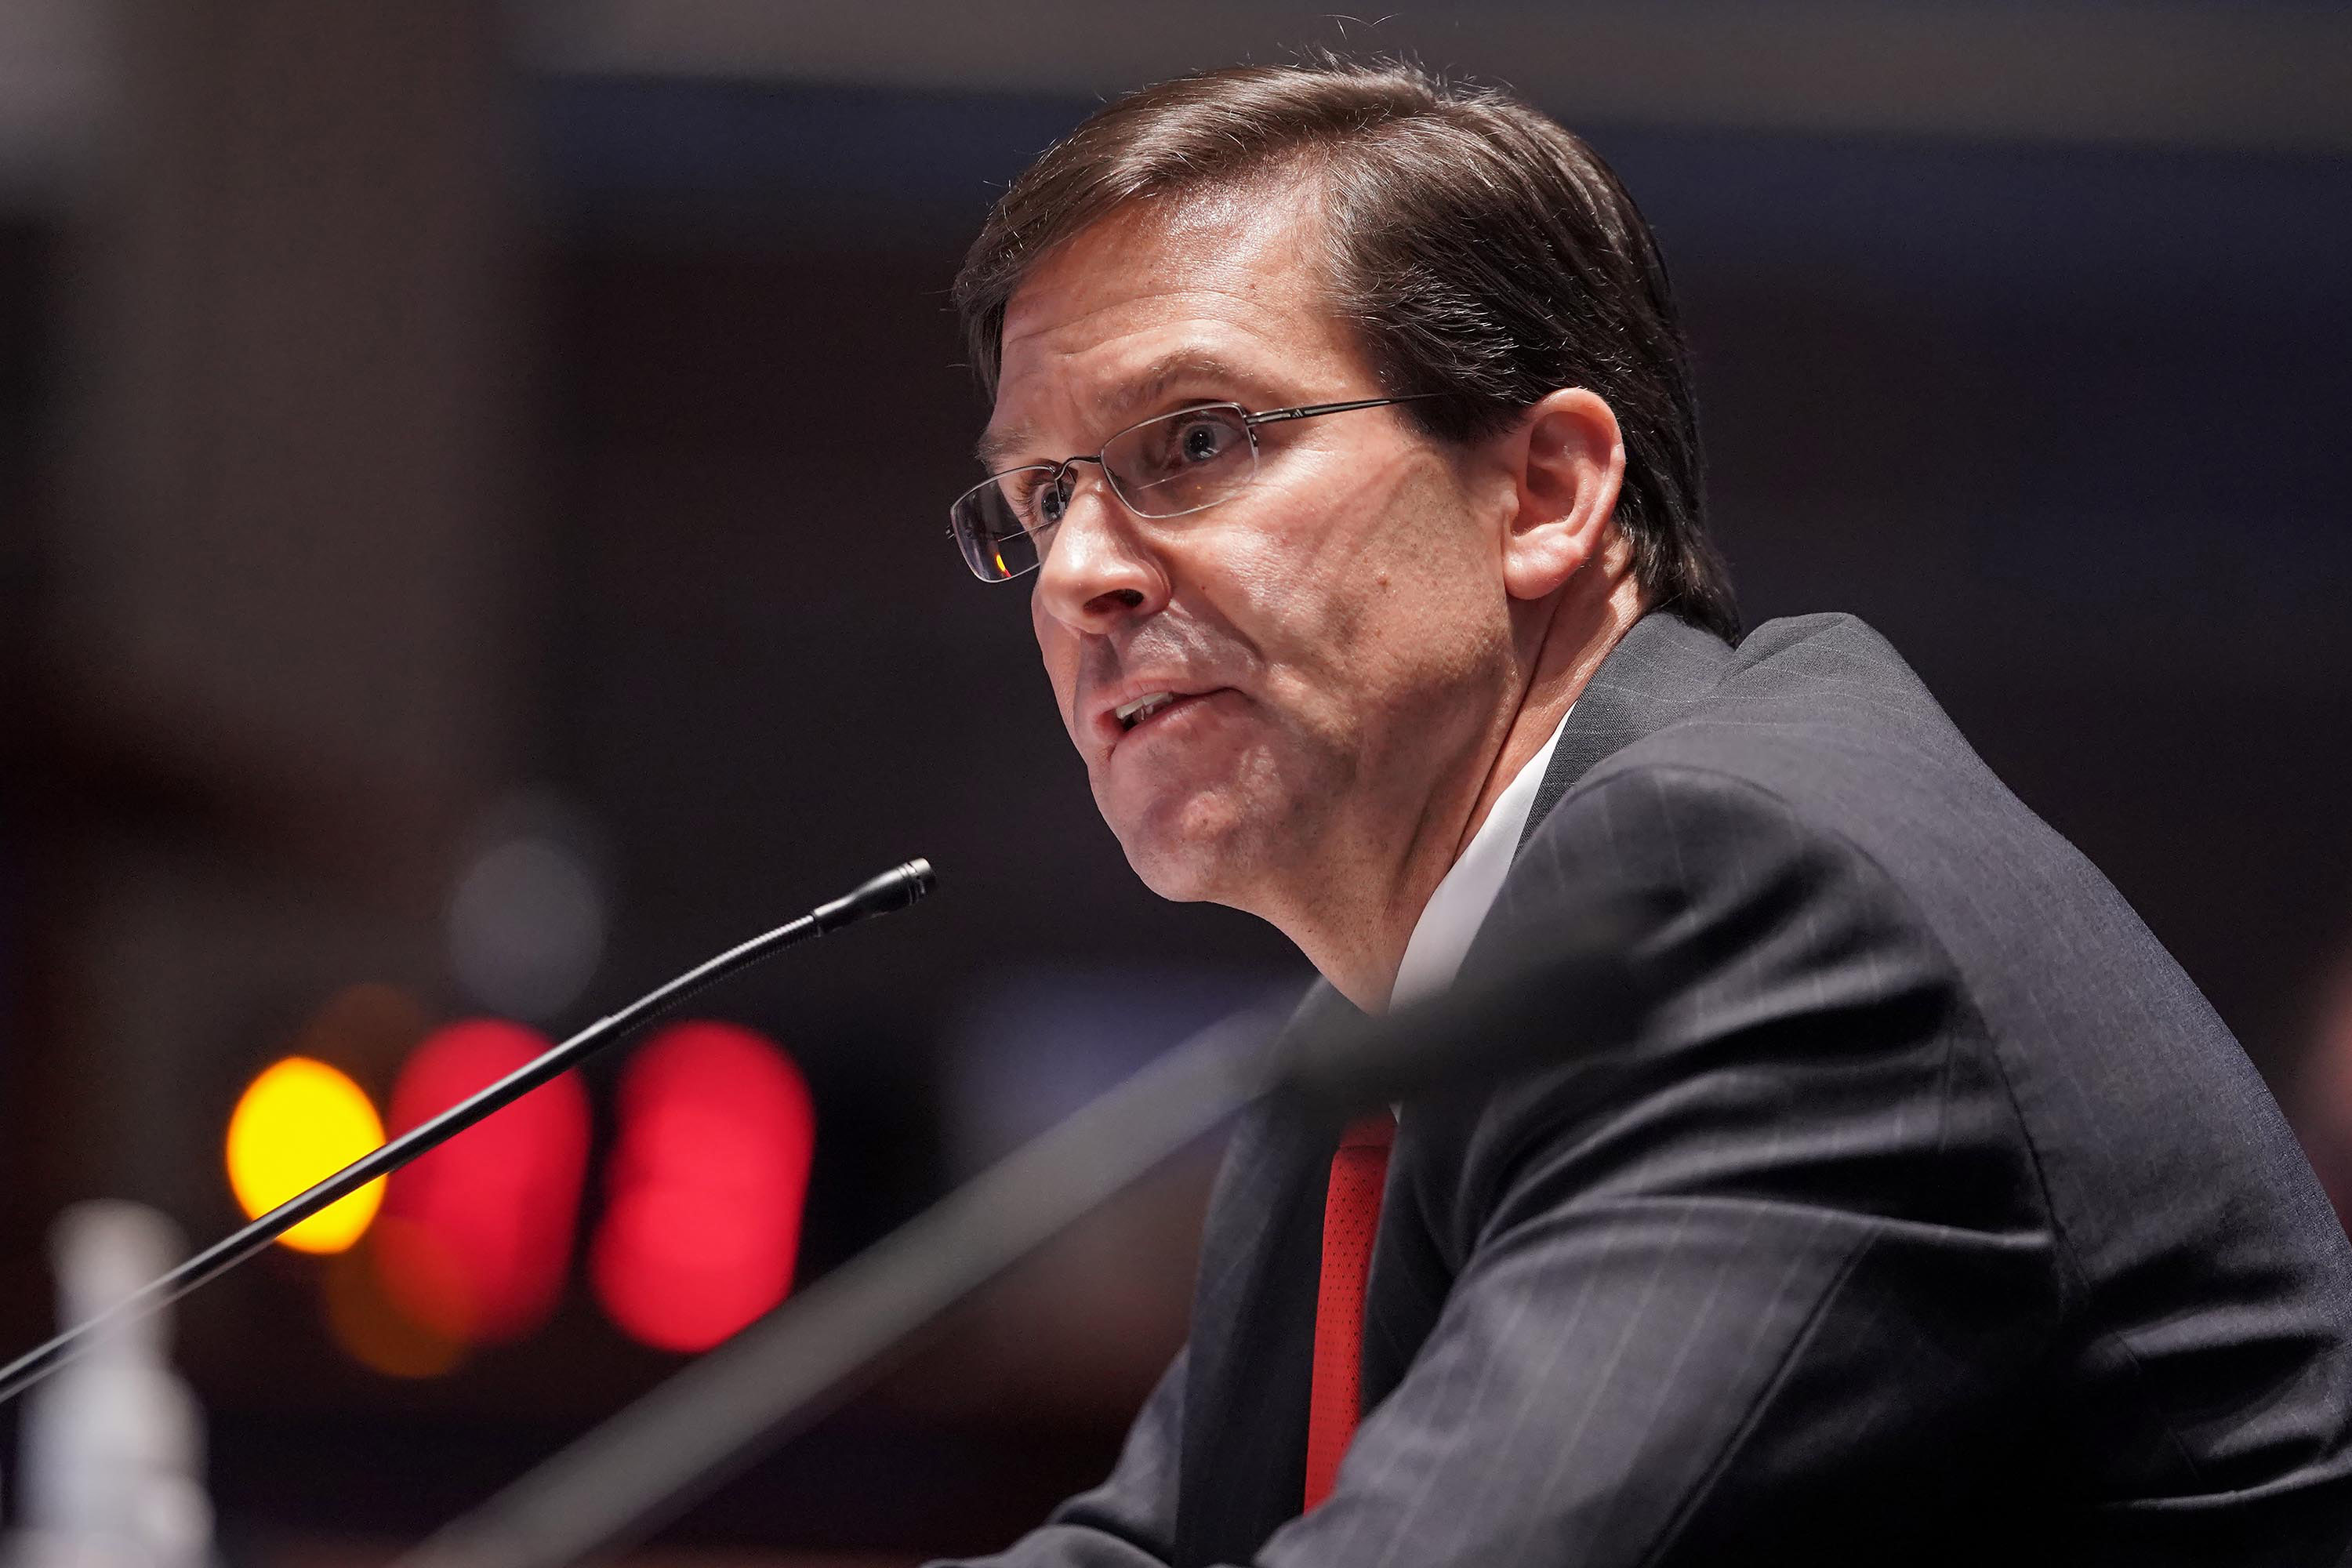 Secretary of Defense Mark Esper testifies during a House Armed Services Committee hearing on July 9 in Washington, DC.